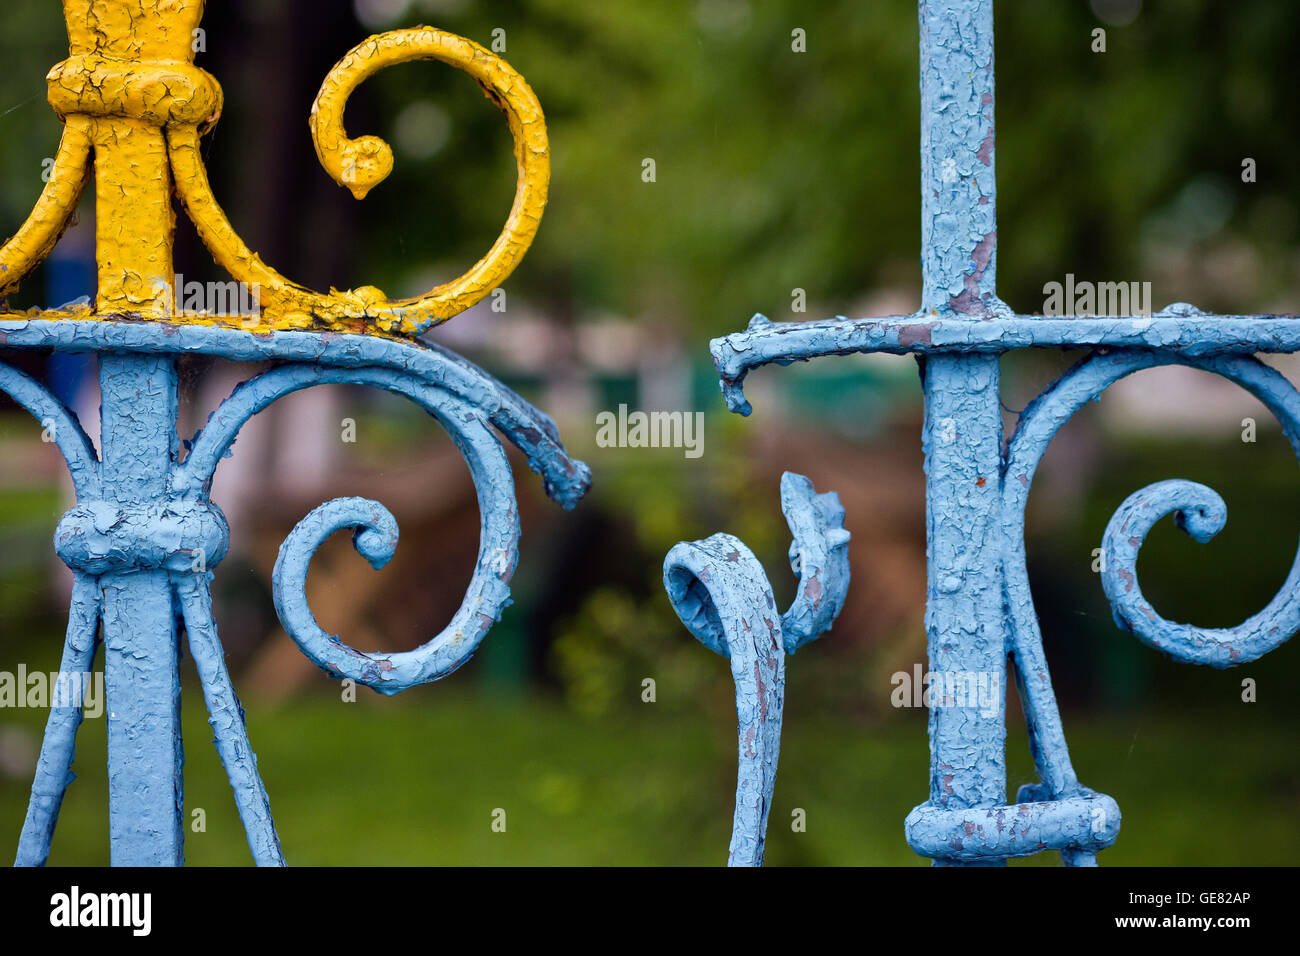 Gates to the church inside the Chernobyl exclusion zone, Ukraine - Stock Image